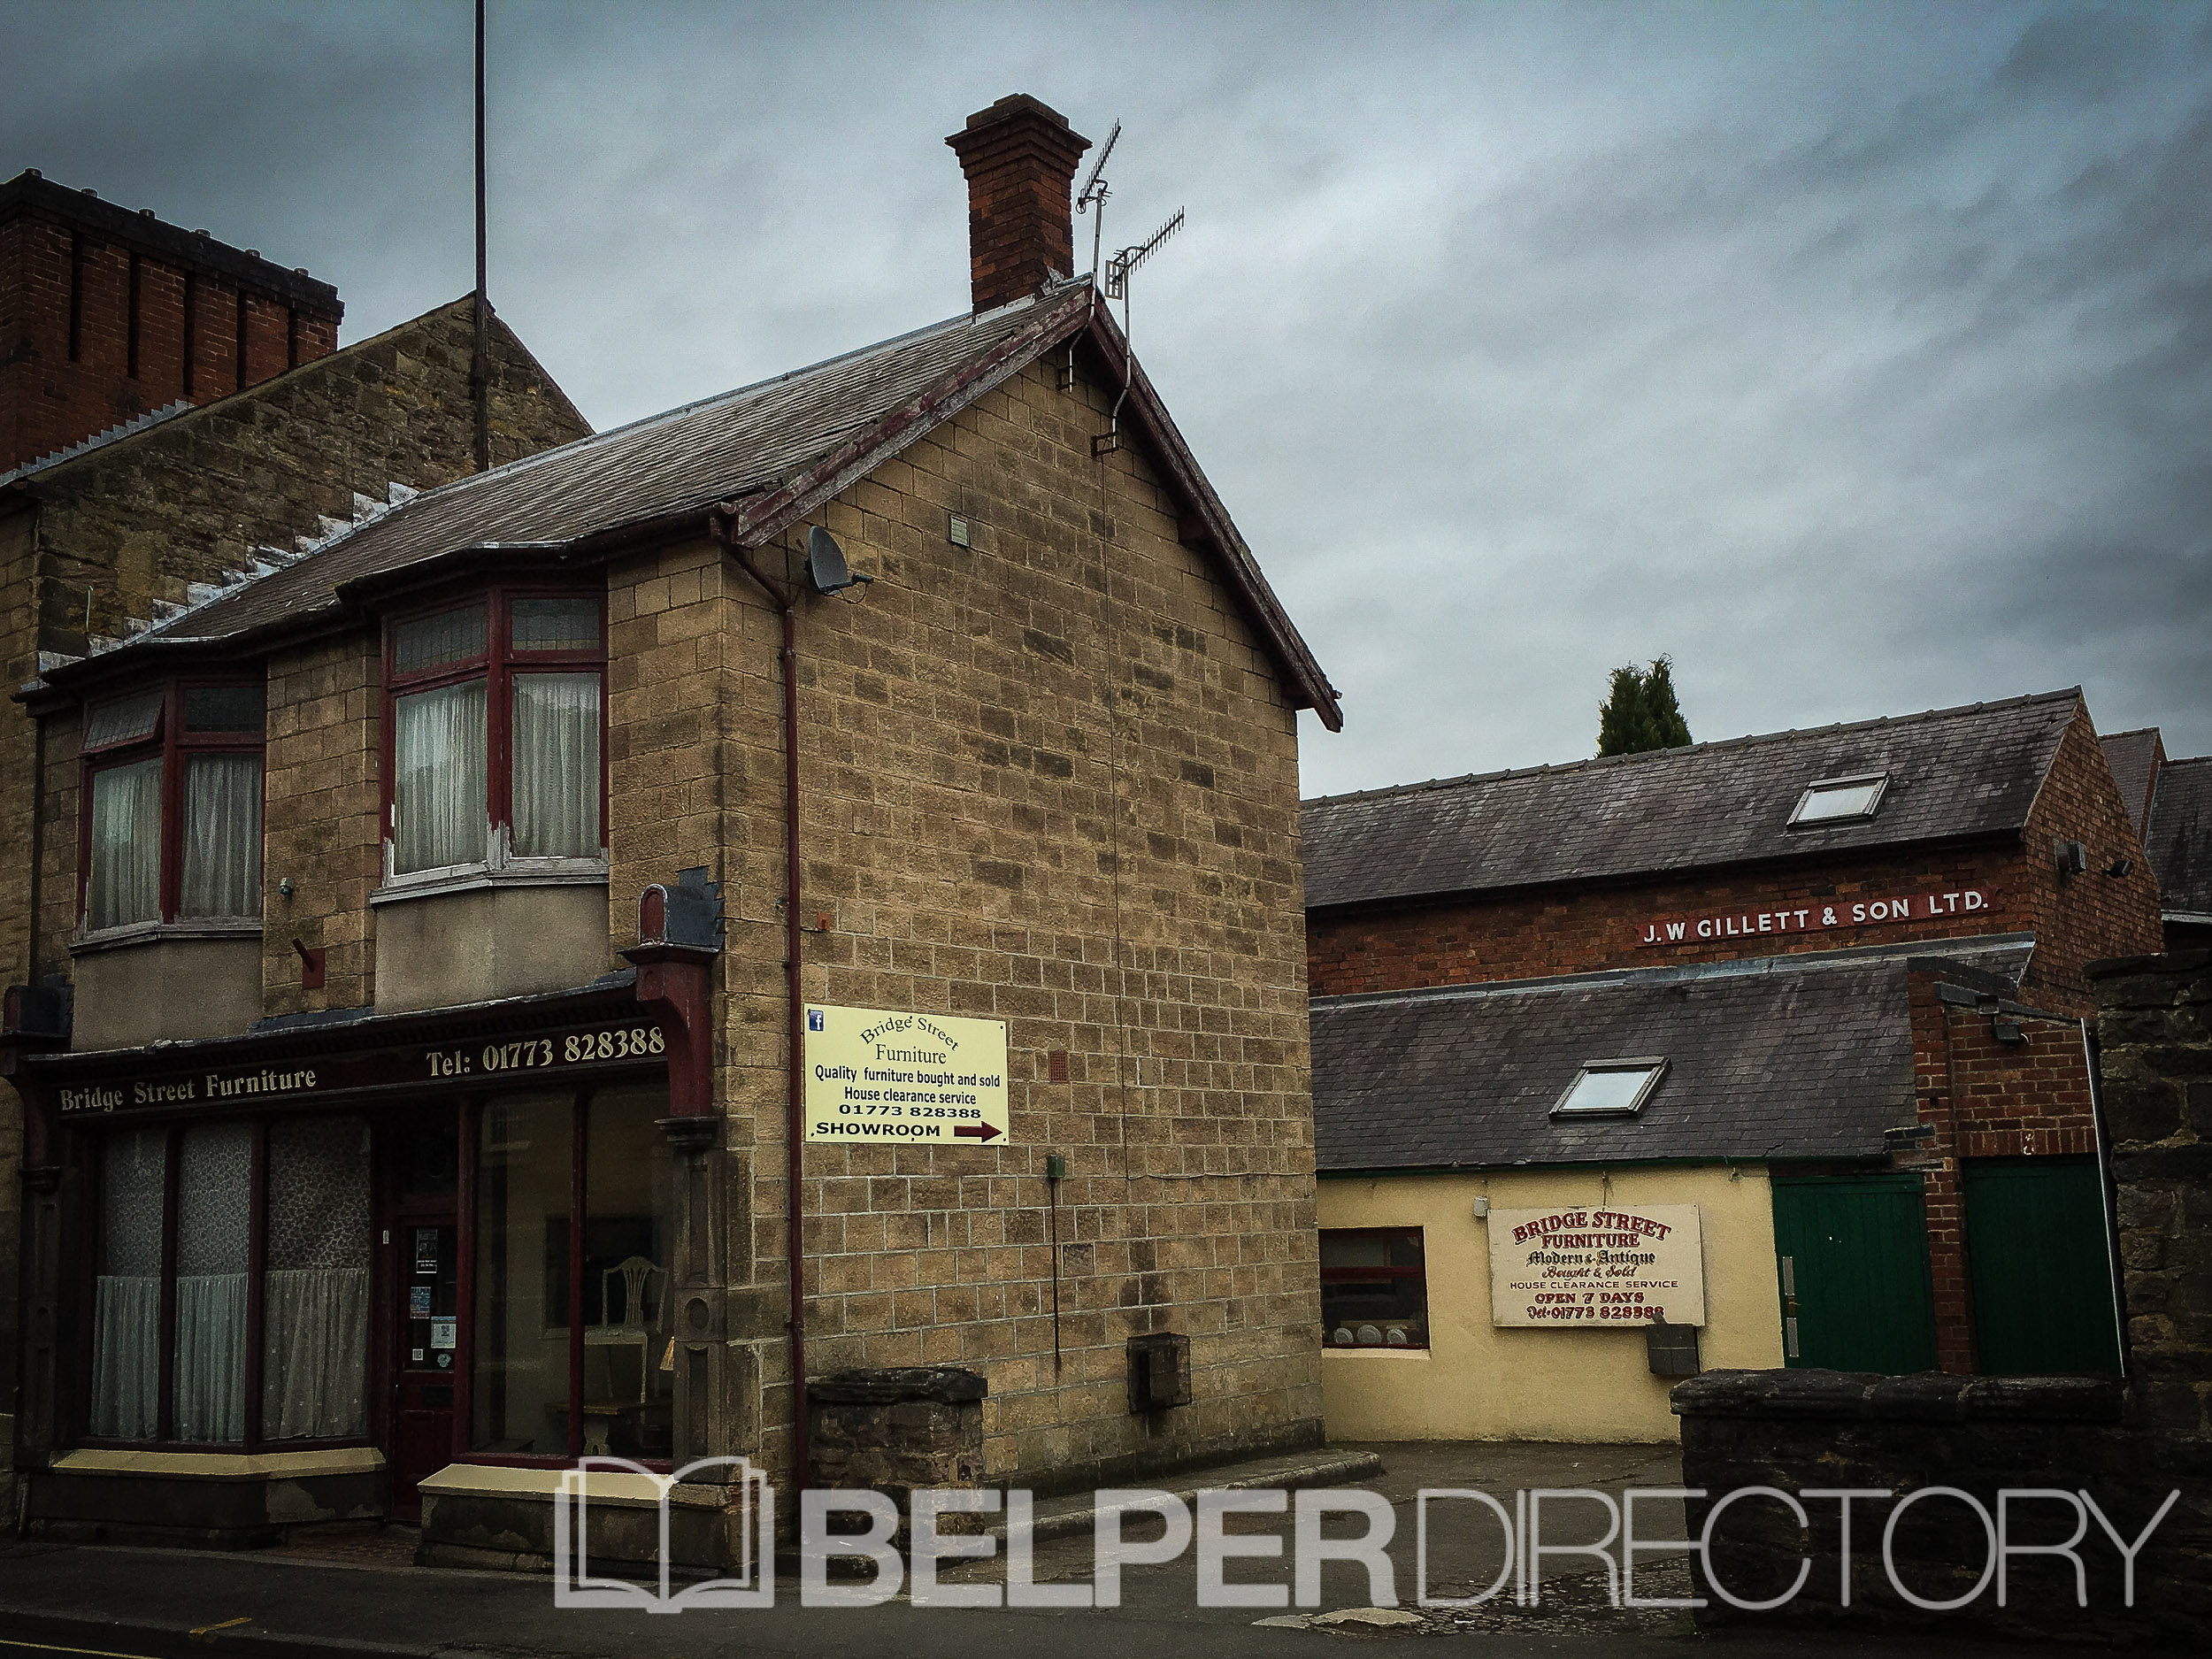 Belper Directory- Bridge Street Furniture.jpg